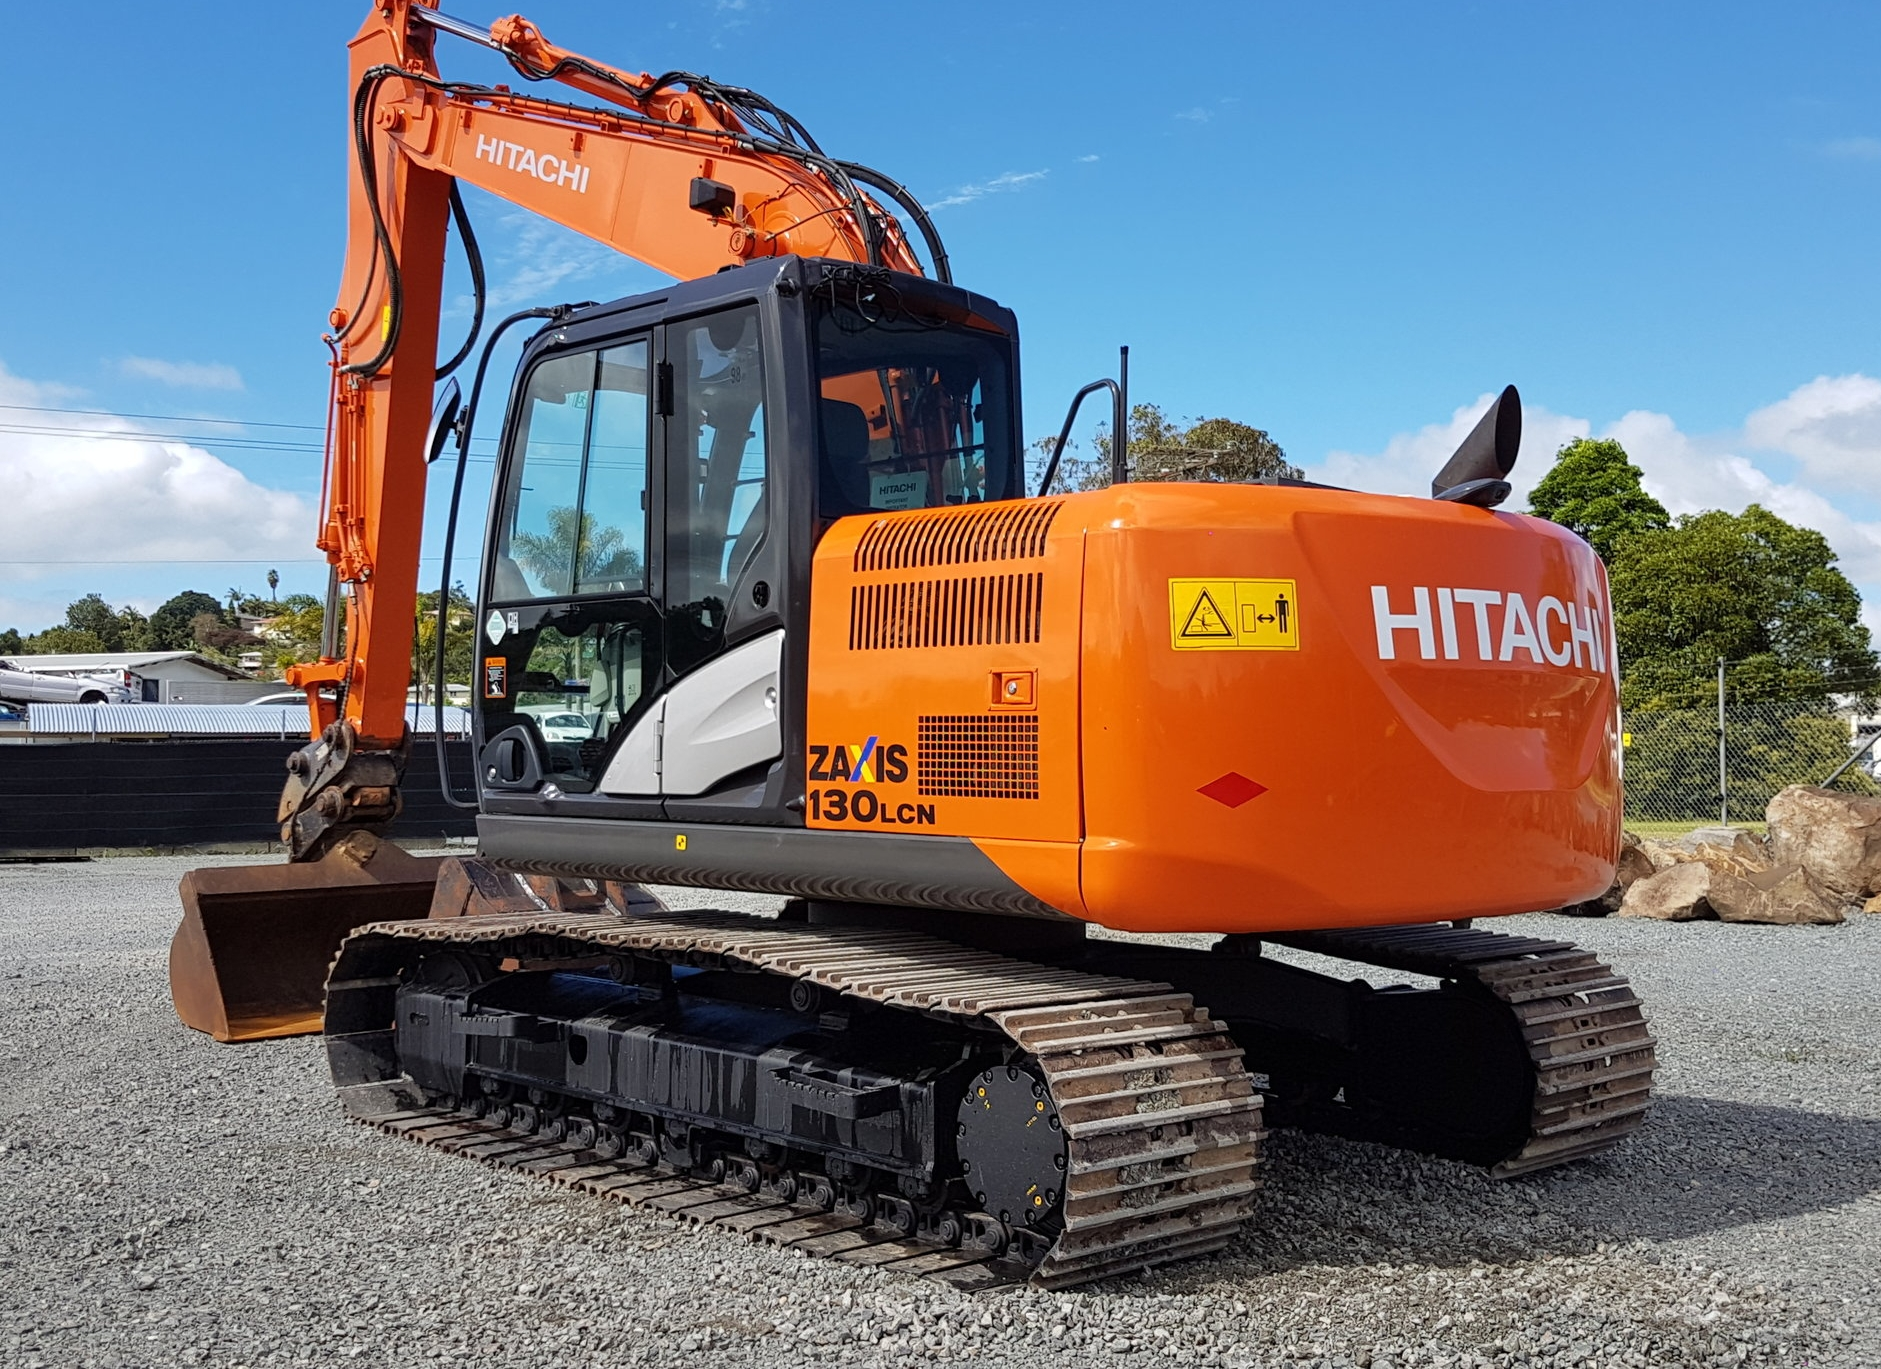 2014 Hitachi ZX130LCN-5B fitted with hyd hitch & tilt bucket